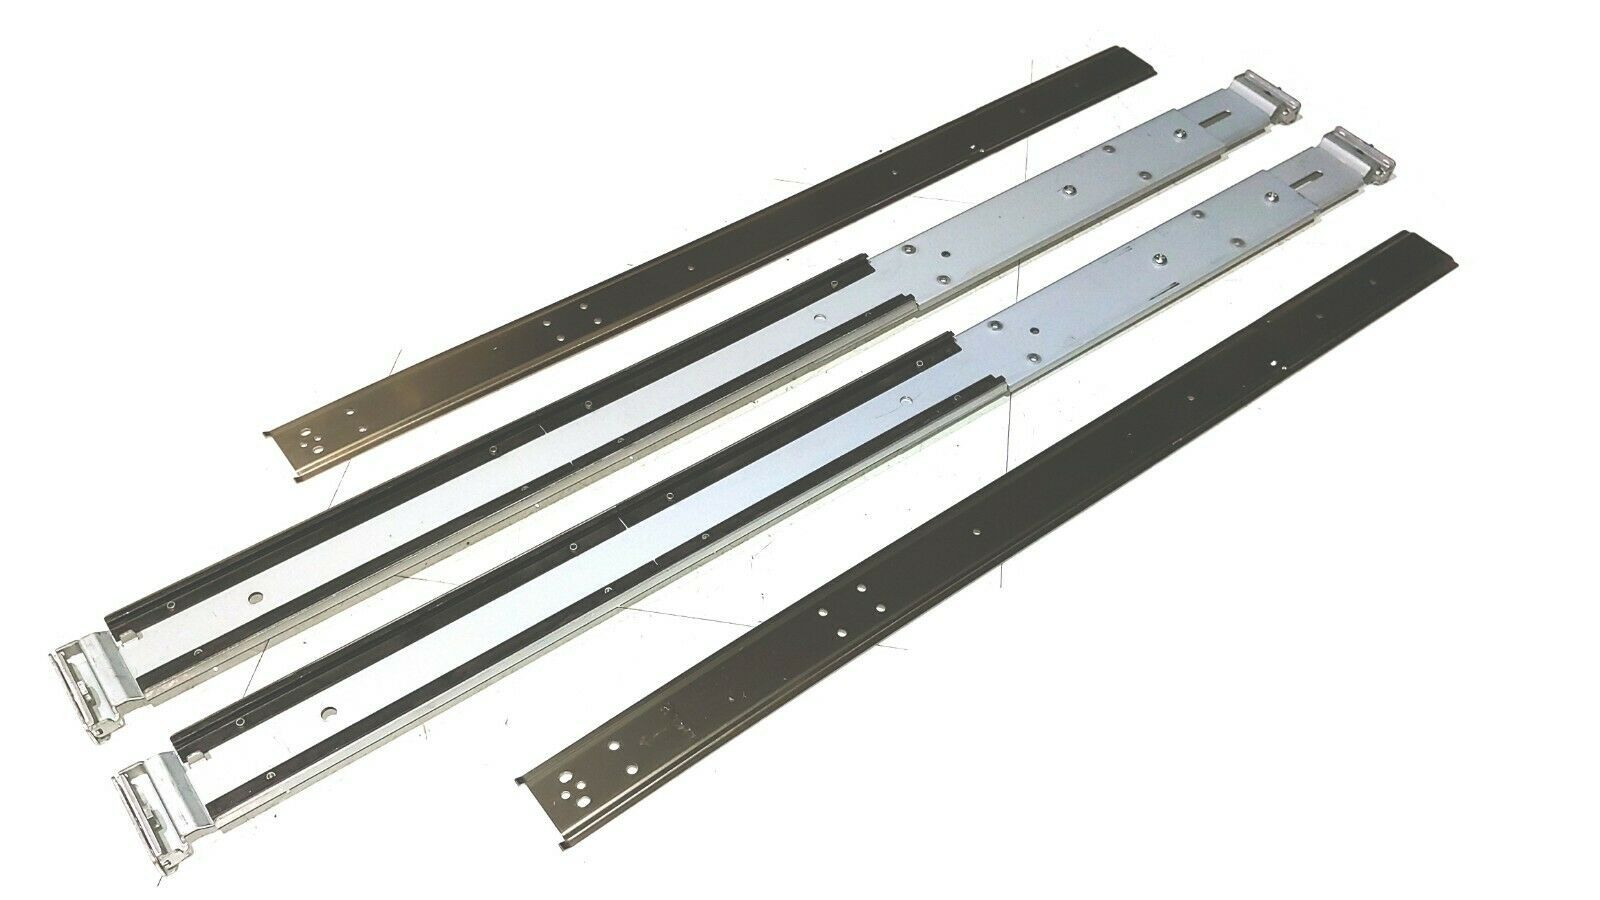 Dell Compellent Storage Array Series 30 40 HB-1235 Xyratex Rack Mount Rails